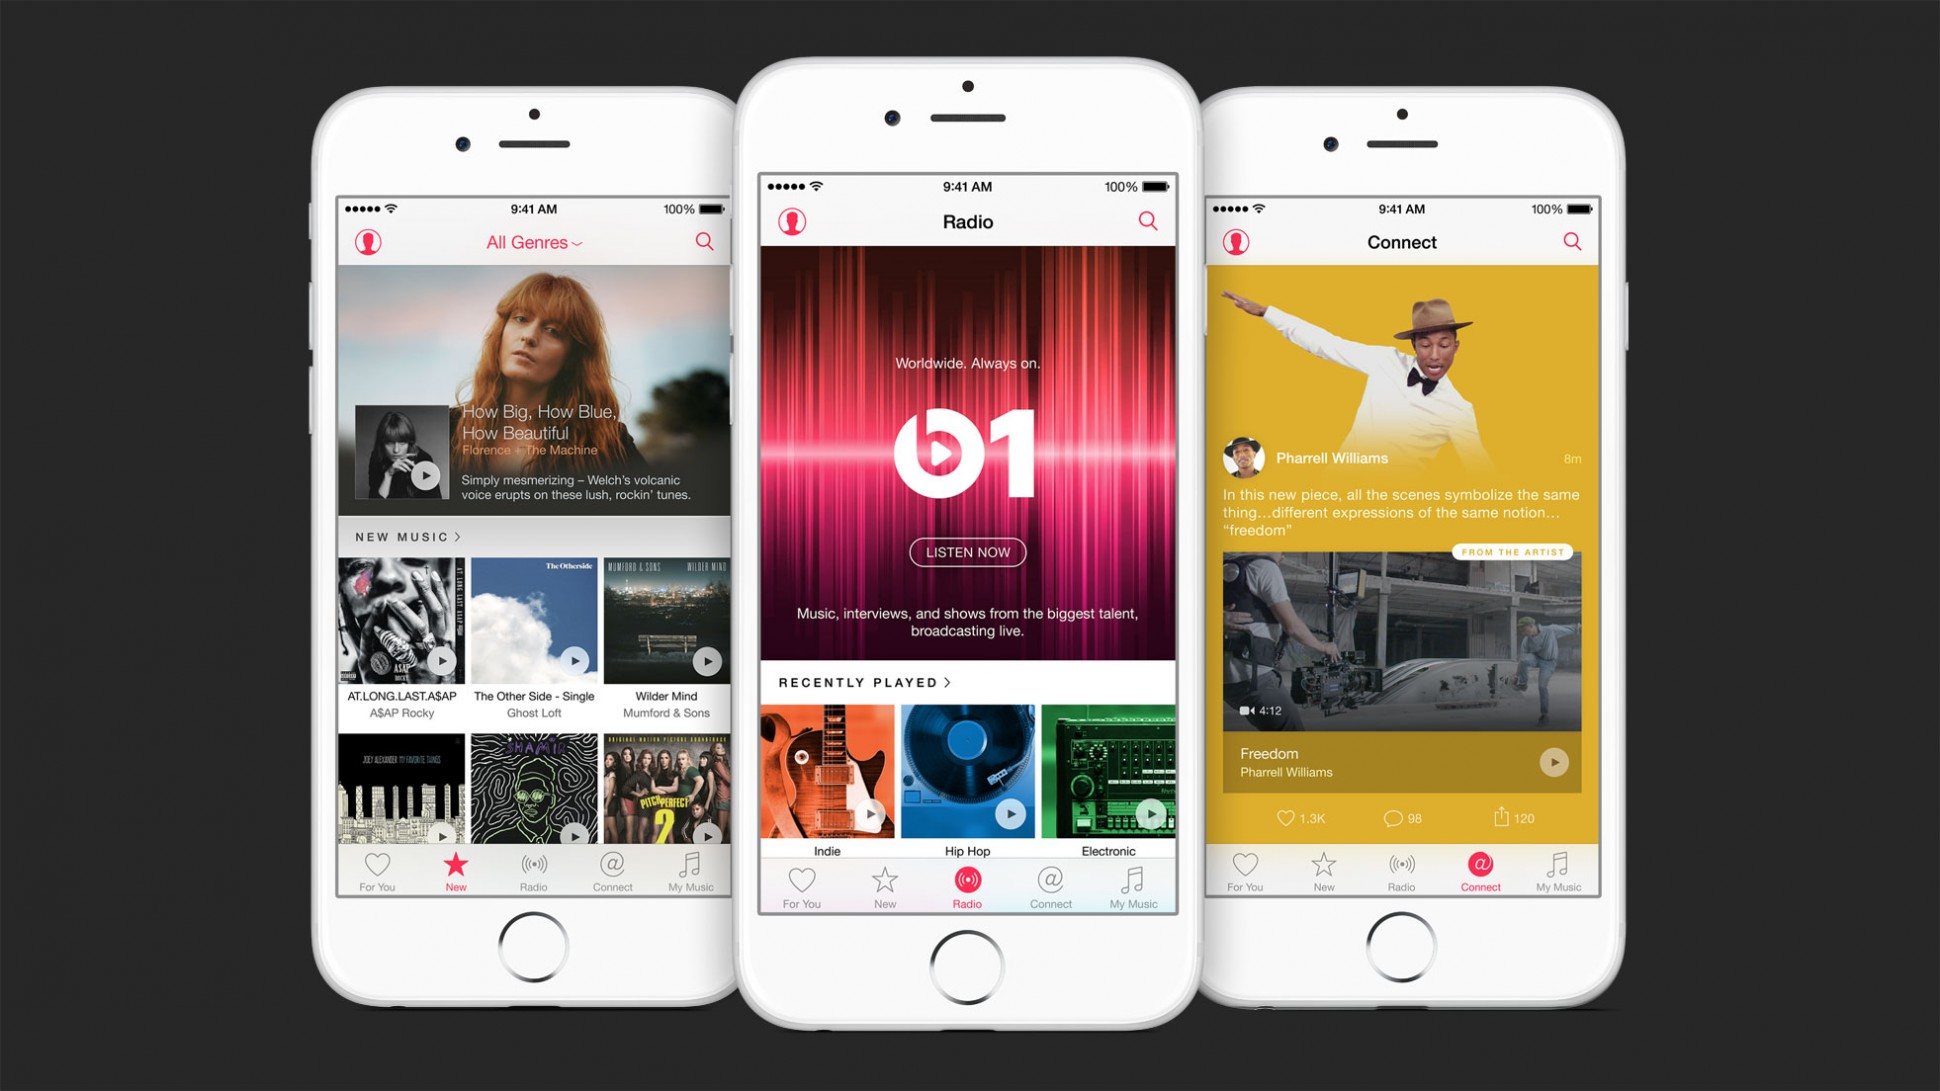 What some thought would flop, Apple Music has positioned itself well in the music industry.